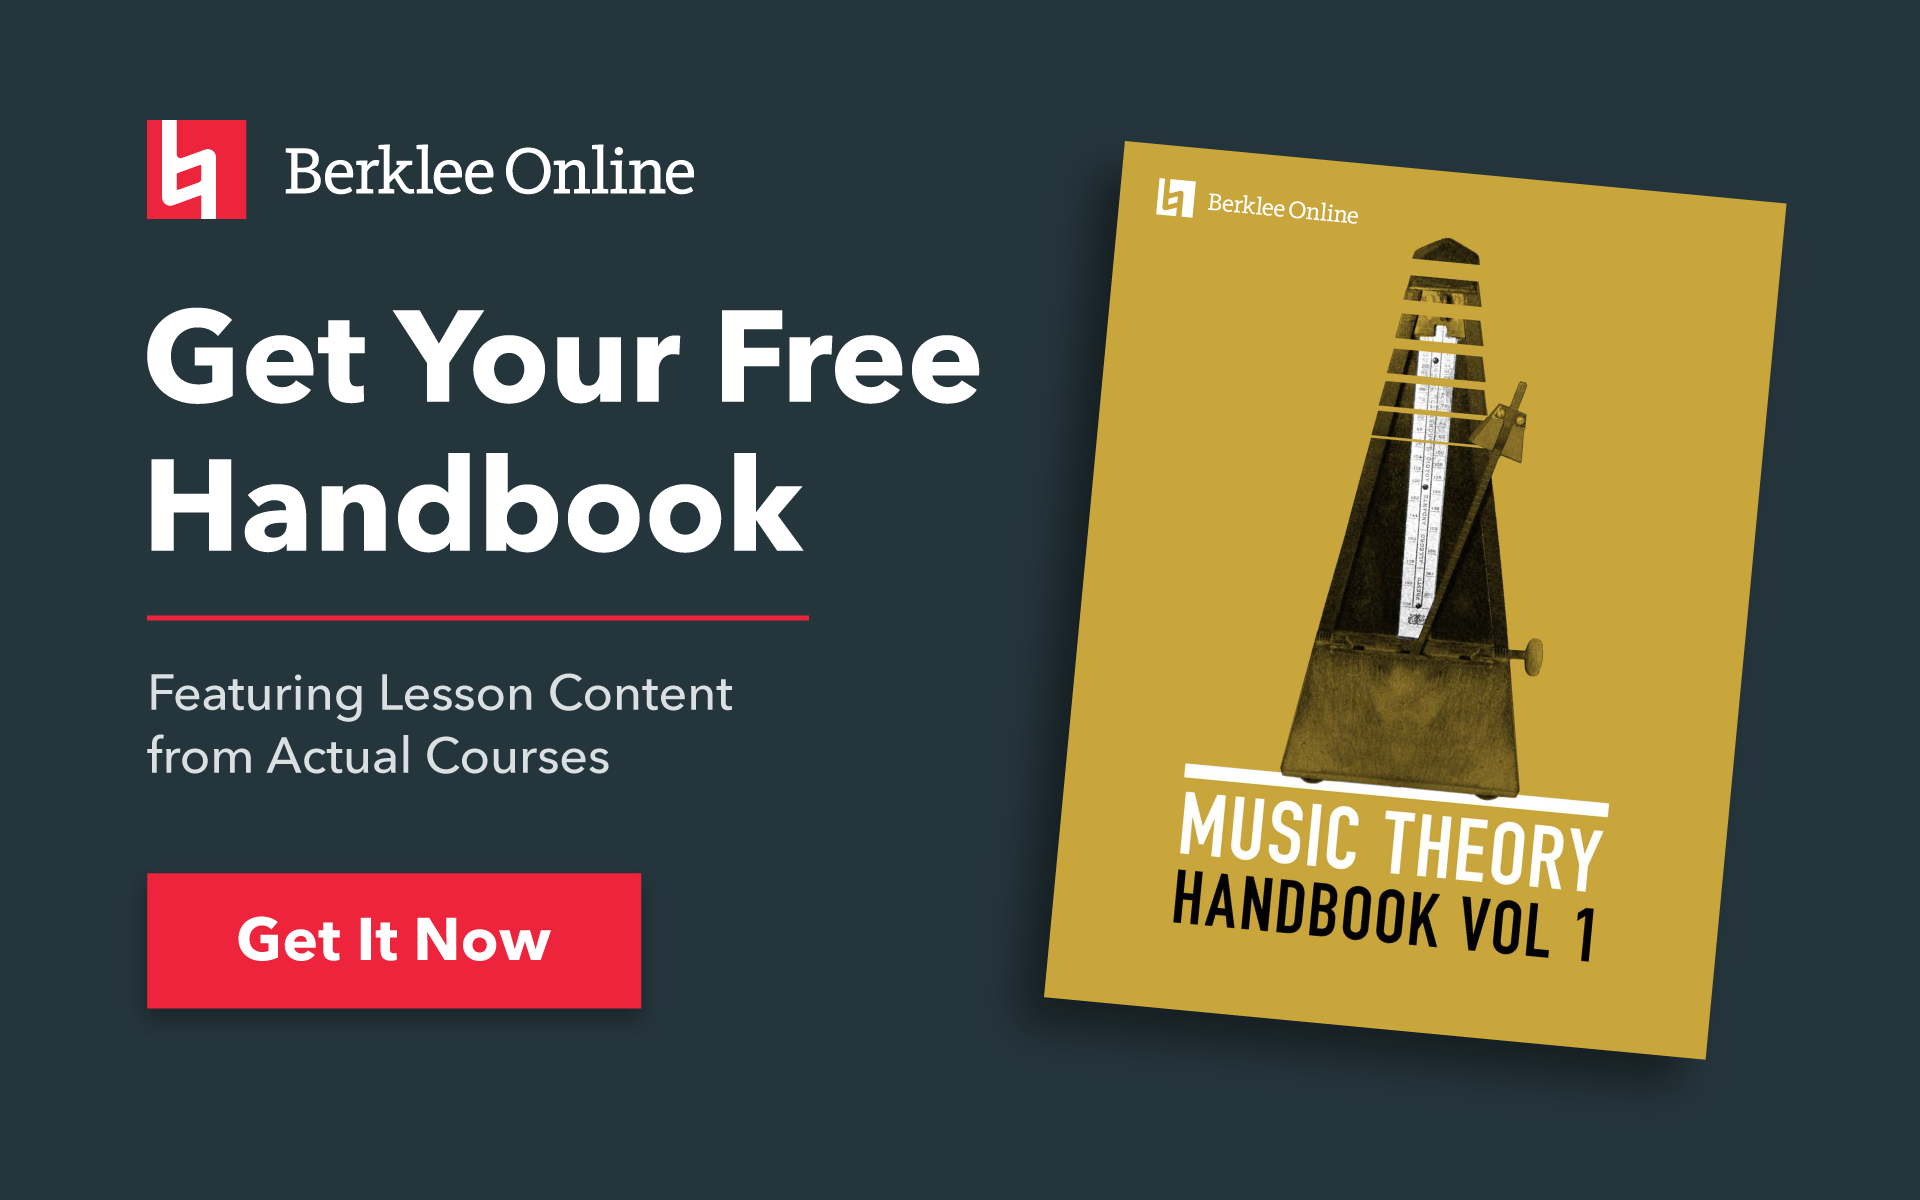 Get your free music theory handbook from Berklee Online.